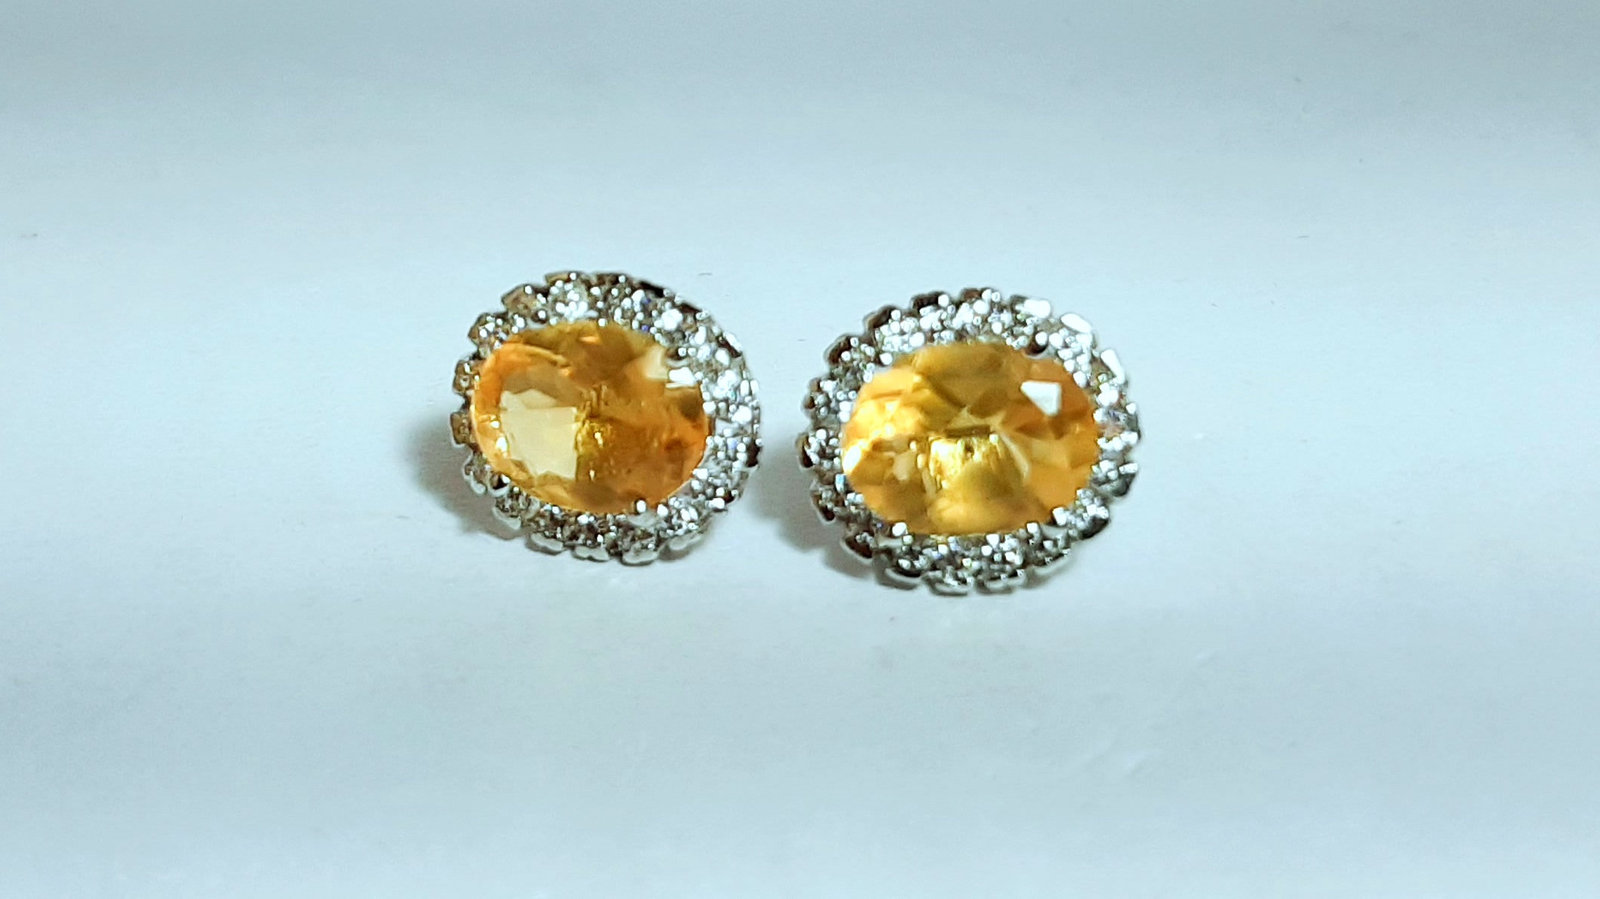 925 Sterling Silver Natural A+ Quality Citrine And Cz Gemstone Handcrafted Desig image 3